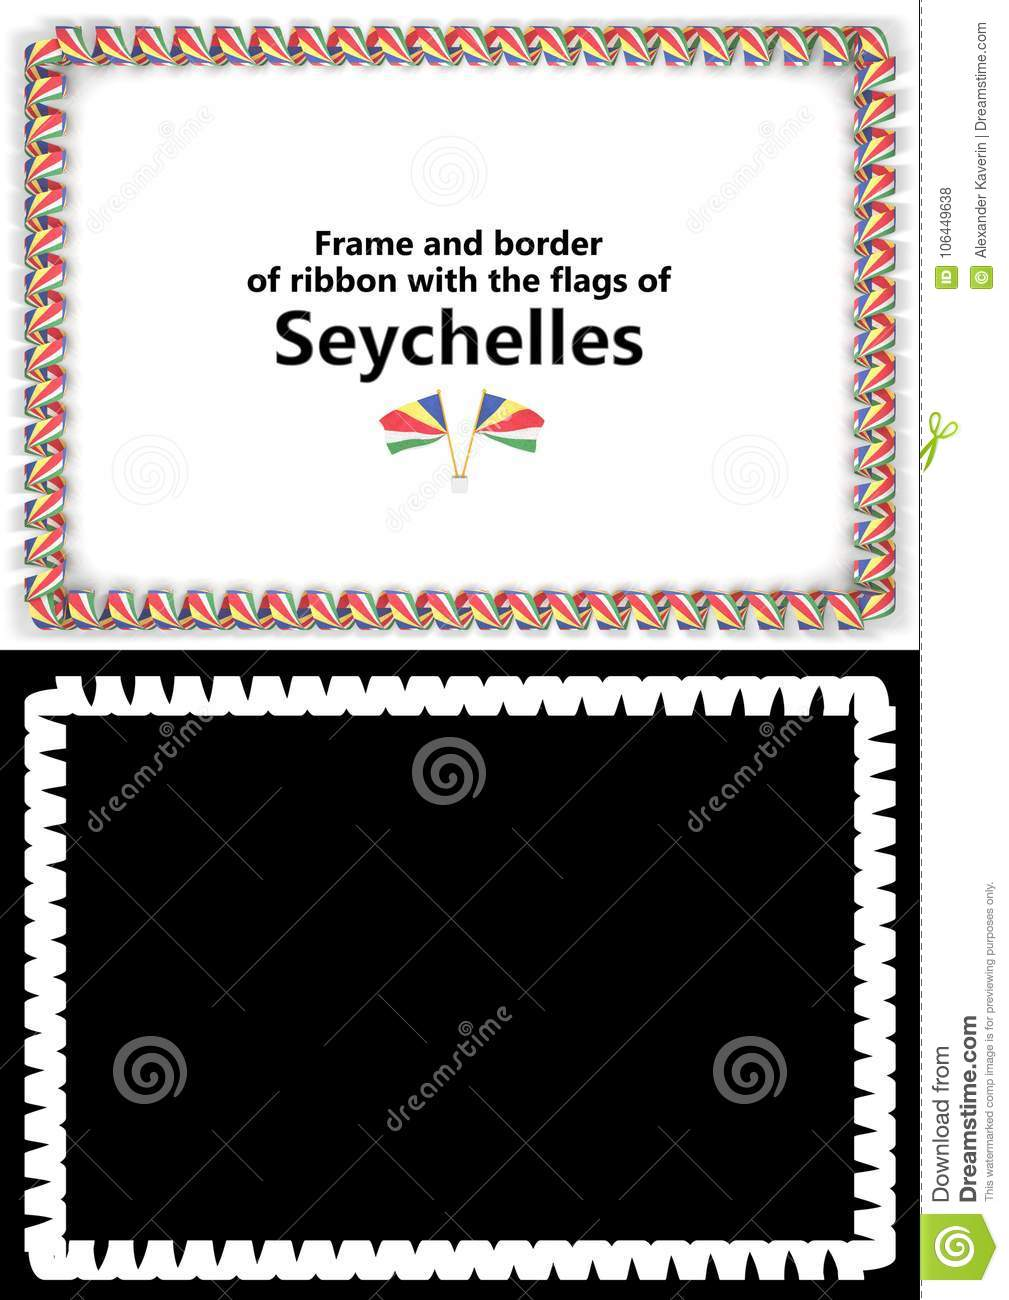 frame and border of ribbon with the seychelles flag for diplomas